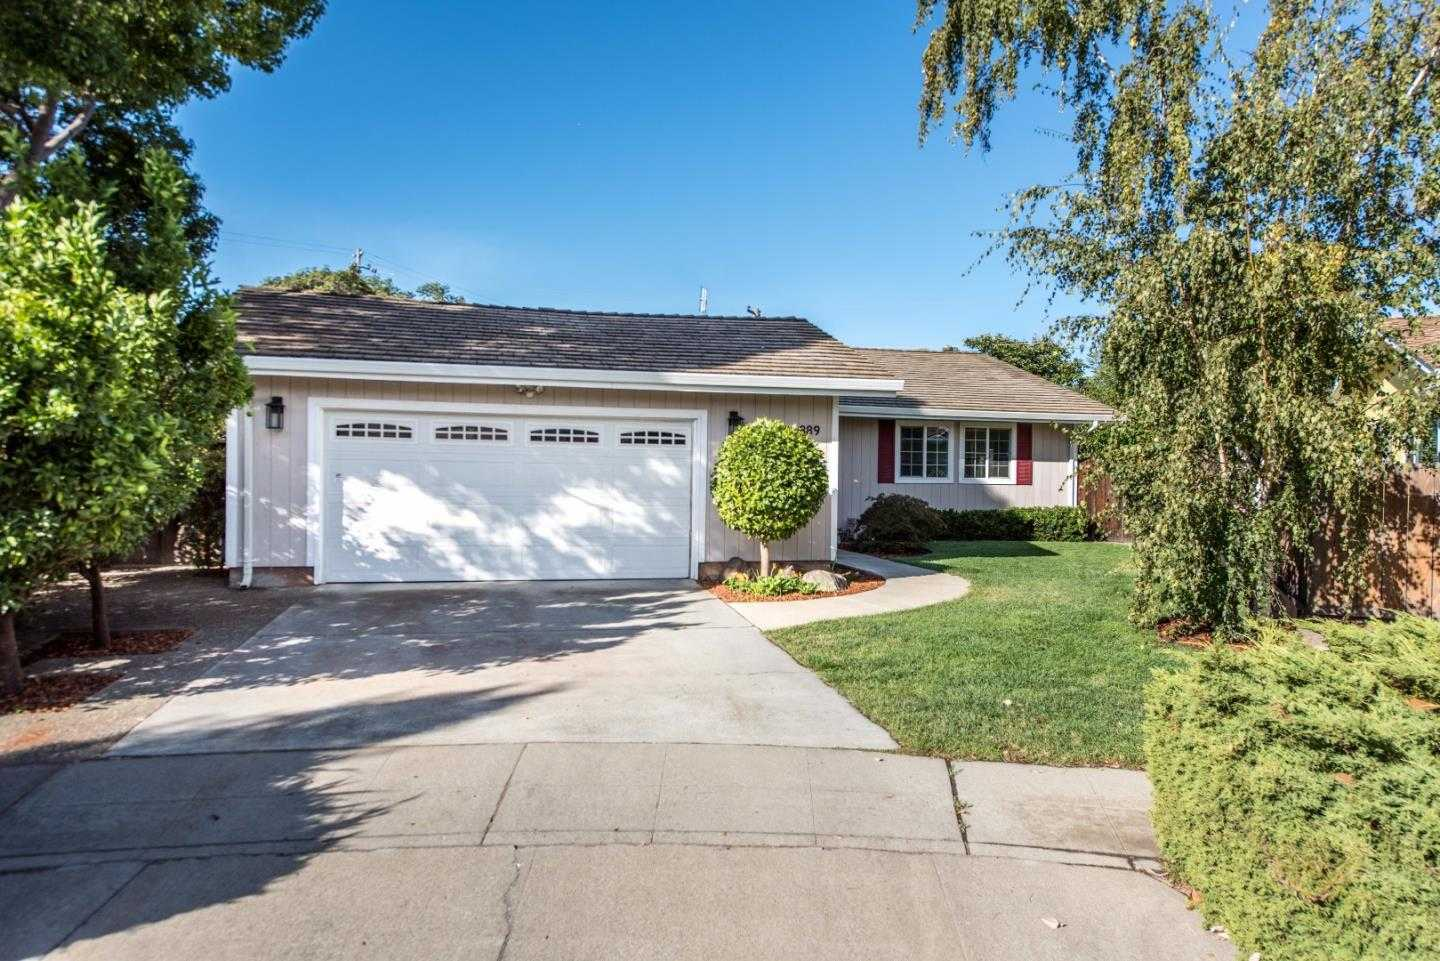 $1,899,000 - 3Br/2Ba -  for Sale in Sunnyvale